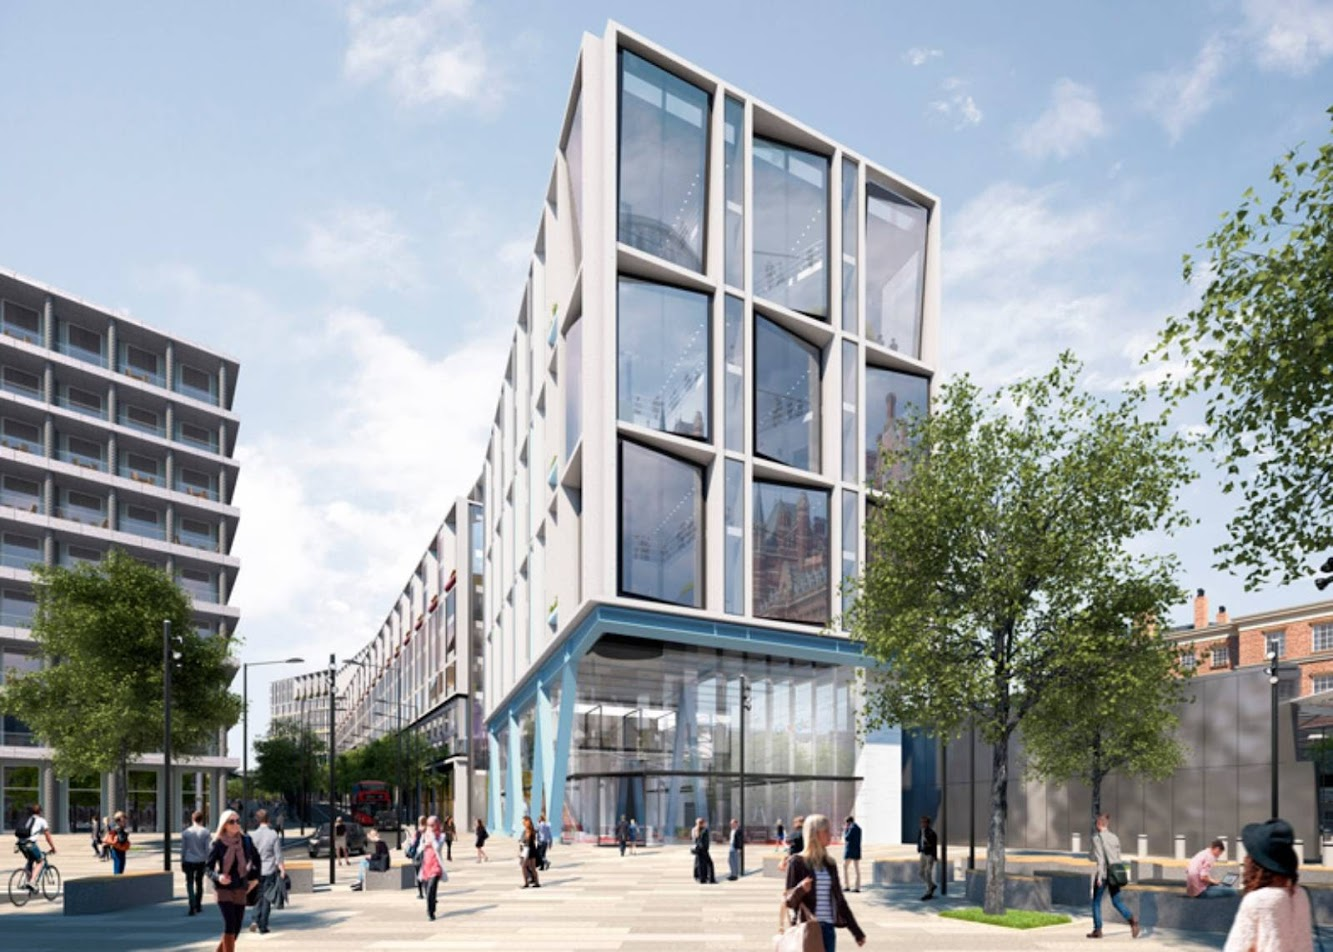 Londra, Regno Unito: GOOGLE'S New Headquarters by Allford Hall Monaghan Morris